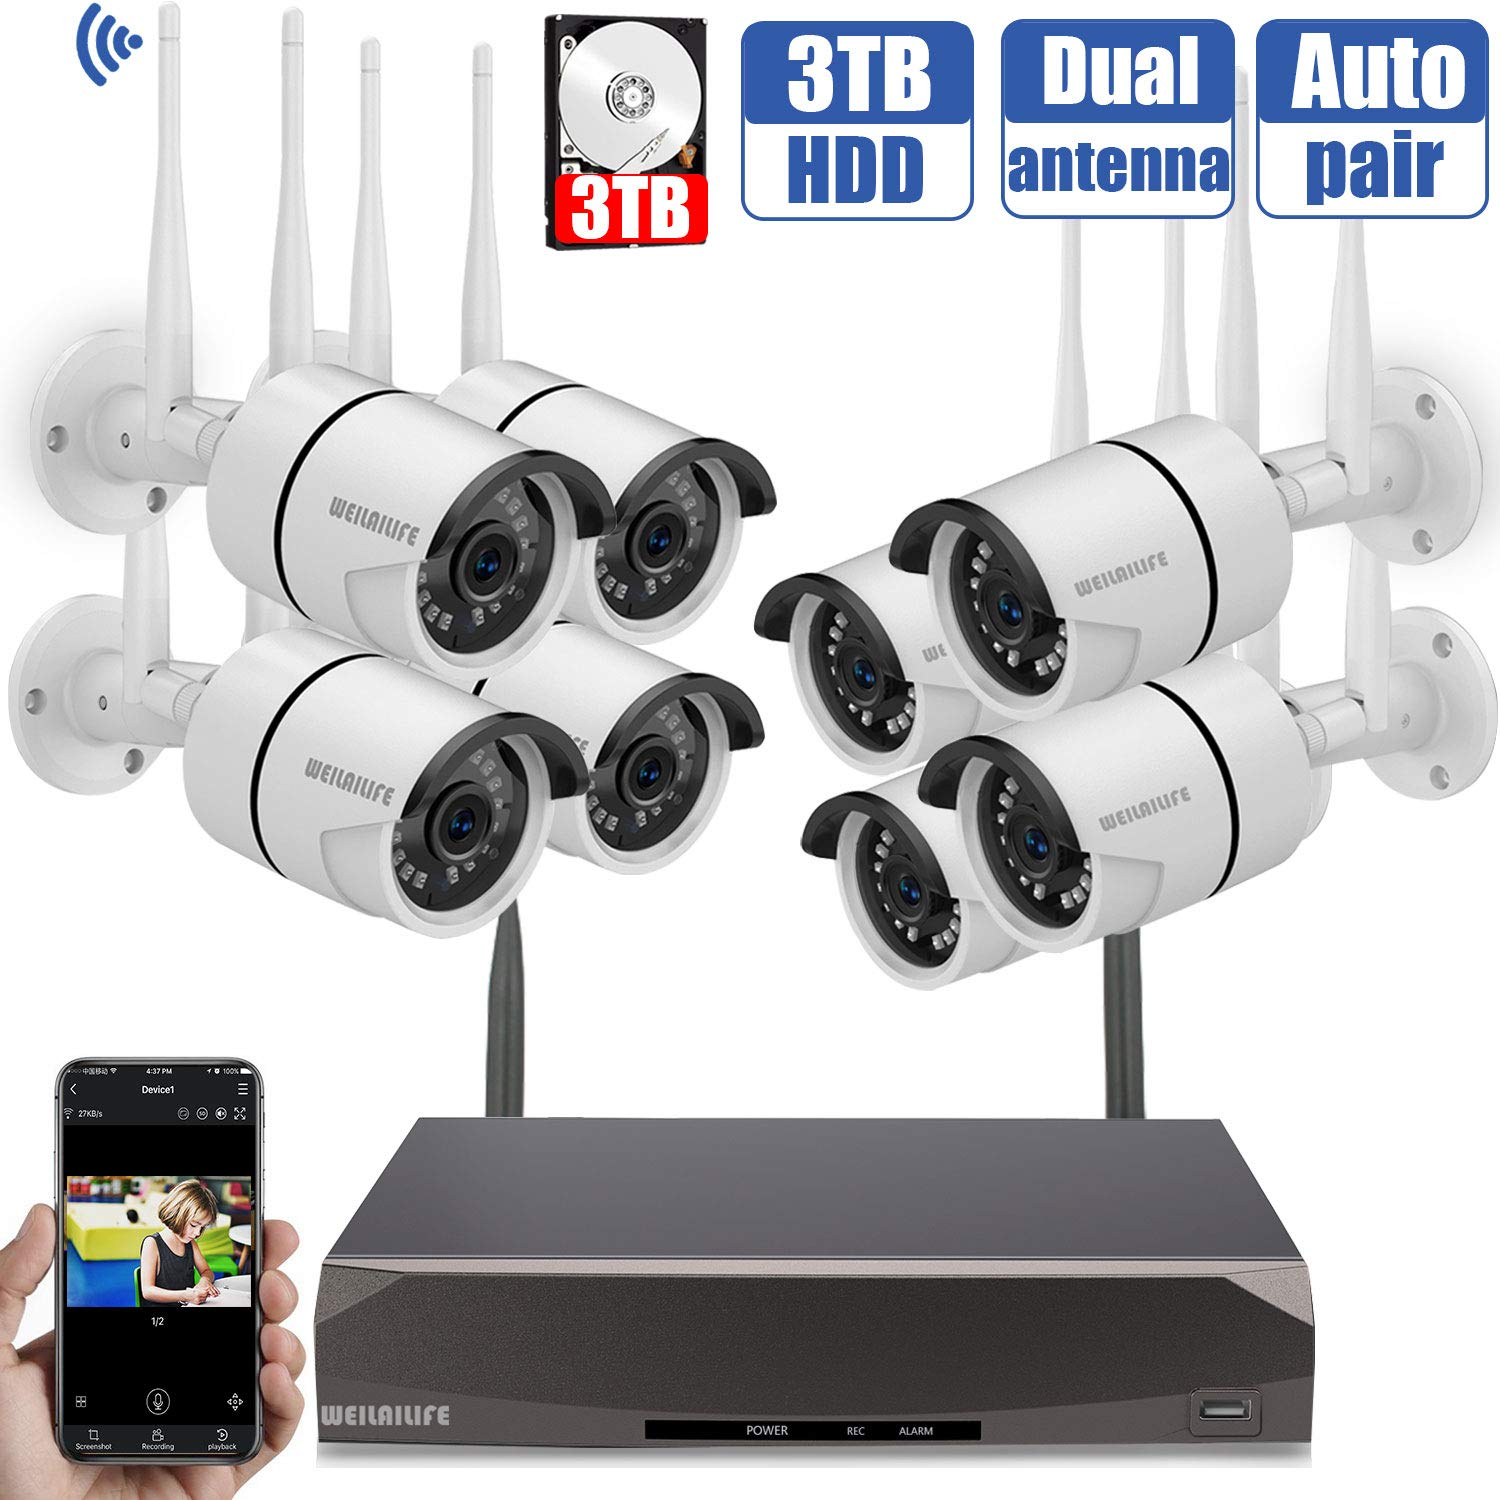 Security Camera System Wireless,8 Channel Home Outdoor Wireless Surveillance Camera System and 8Pcs 960P WiFi Security Weatherproof IP Camera with Night Vision,Remote View,3TB Hard Drive by WEILAILIFE